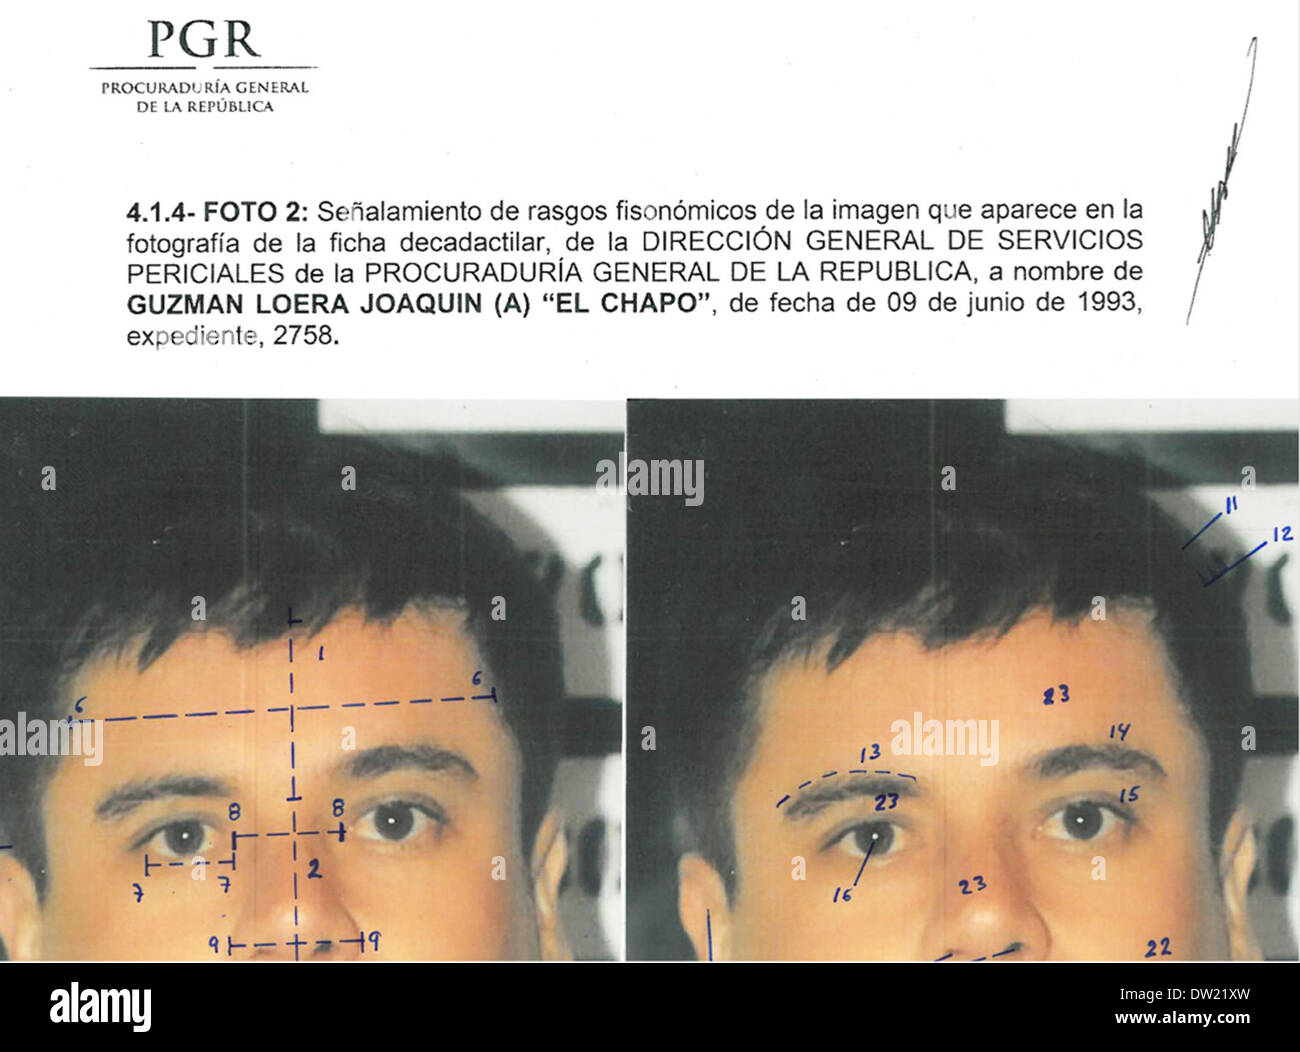 Mexico City. 25th Feb, 2014. This combo of photographs released by Mexico's Attorney General Office (PGR) with identification mapping marks made by the source to point out similarities in face measurements, shows Joaquin 'El Chapo' Guzman, using images made from his 1993 detentions. The Sinaloa Cartel leader was subjected to a buccal swab, a phisiognomic identity study and a test of 10 fingerprints Credit:  Mexico's Attorney General Office/Xinhua/Alamy Live News - Stock Image